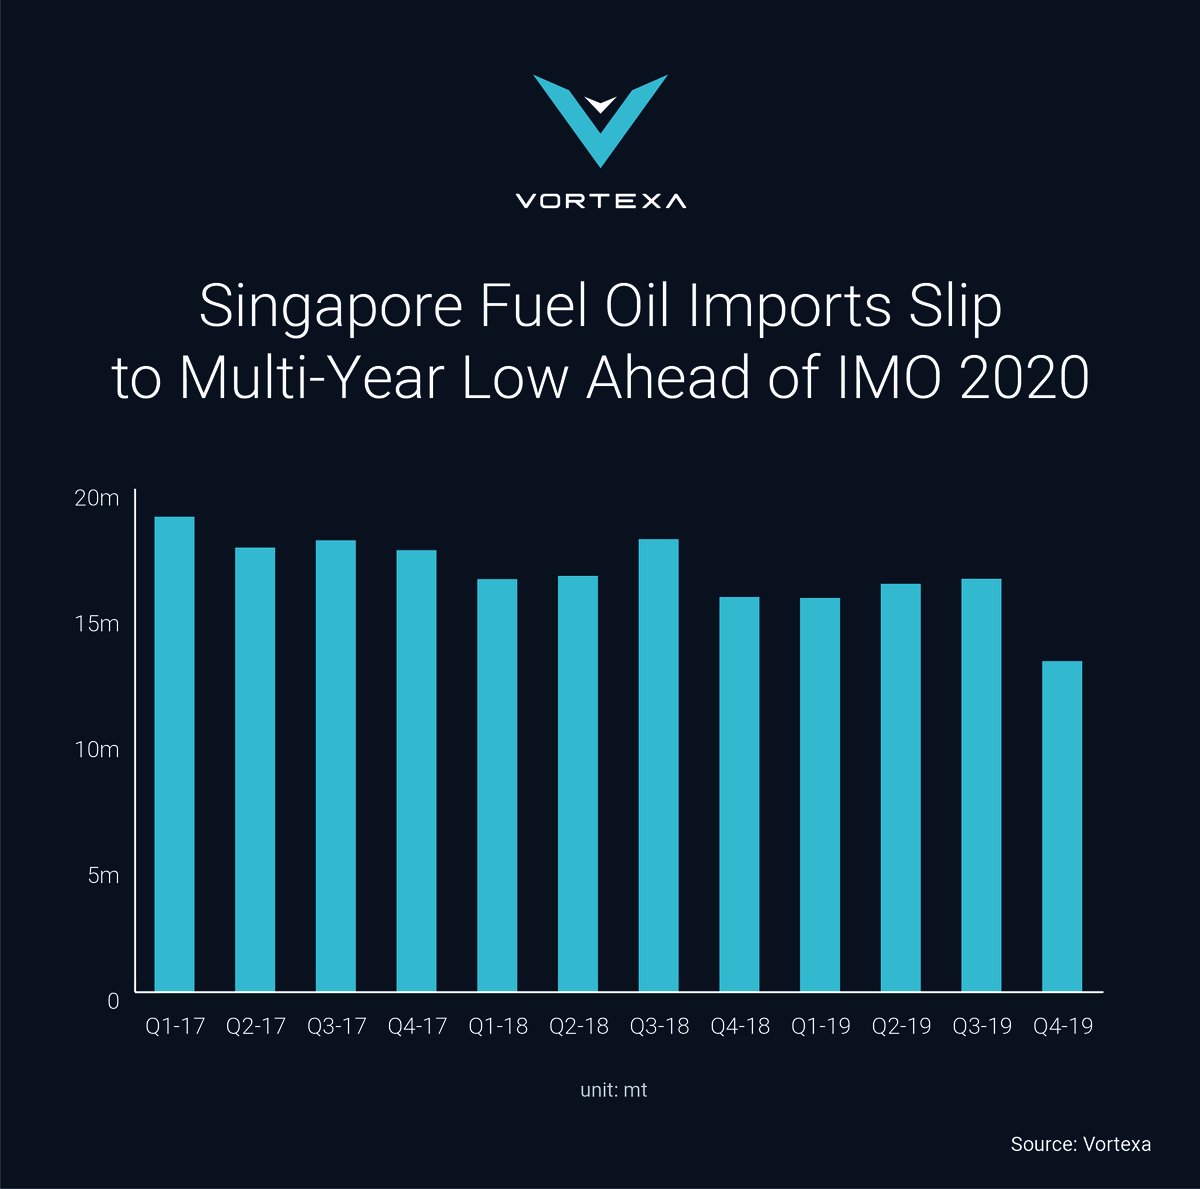 Shortly before the IMO 2020 transition there was a drawdown in Singapore's fuel oil stocks